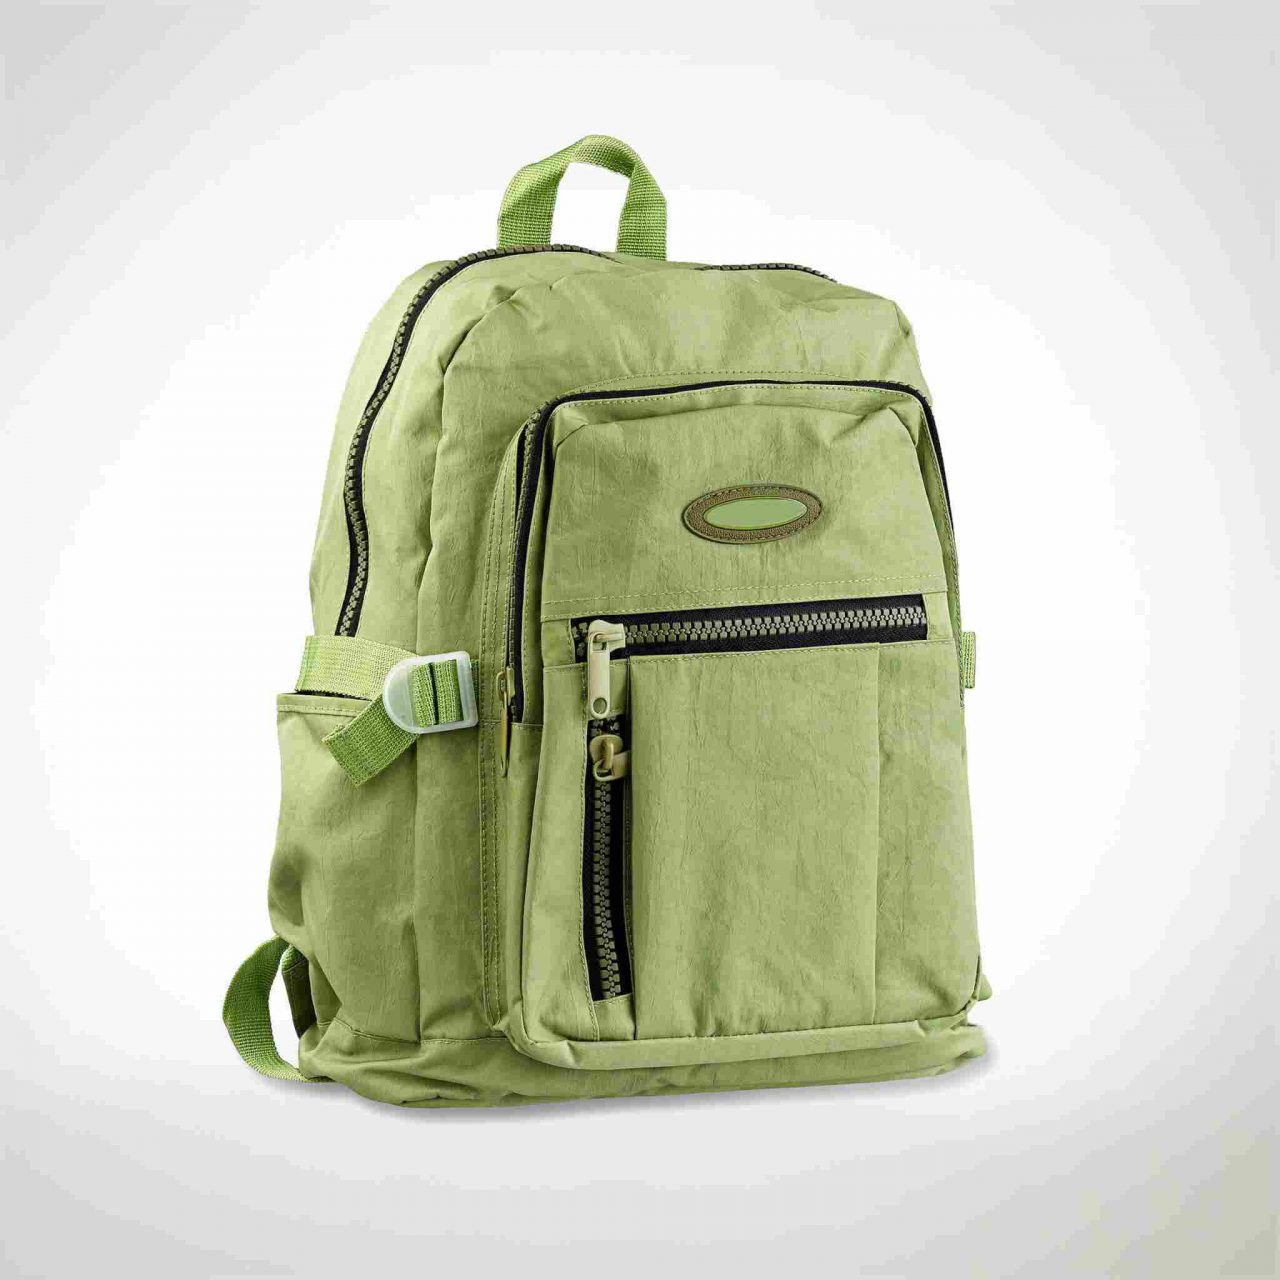 product-green-backpack-1280x1280.jpg